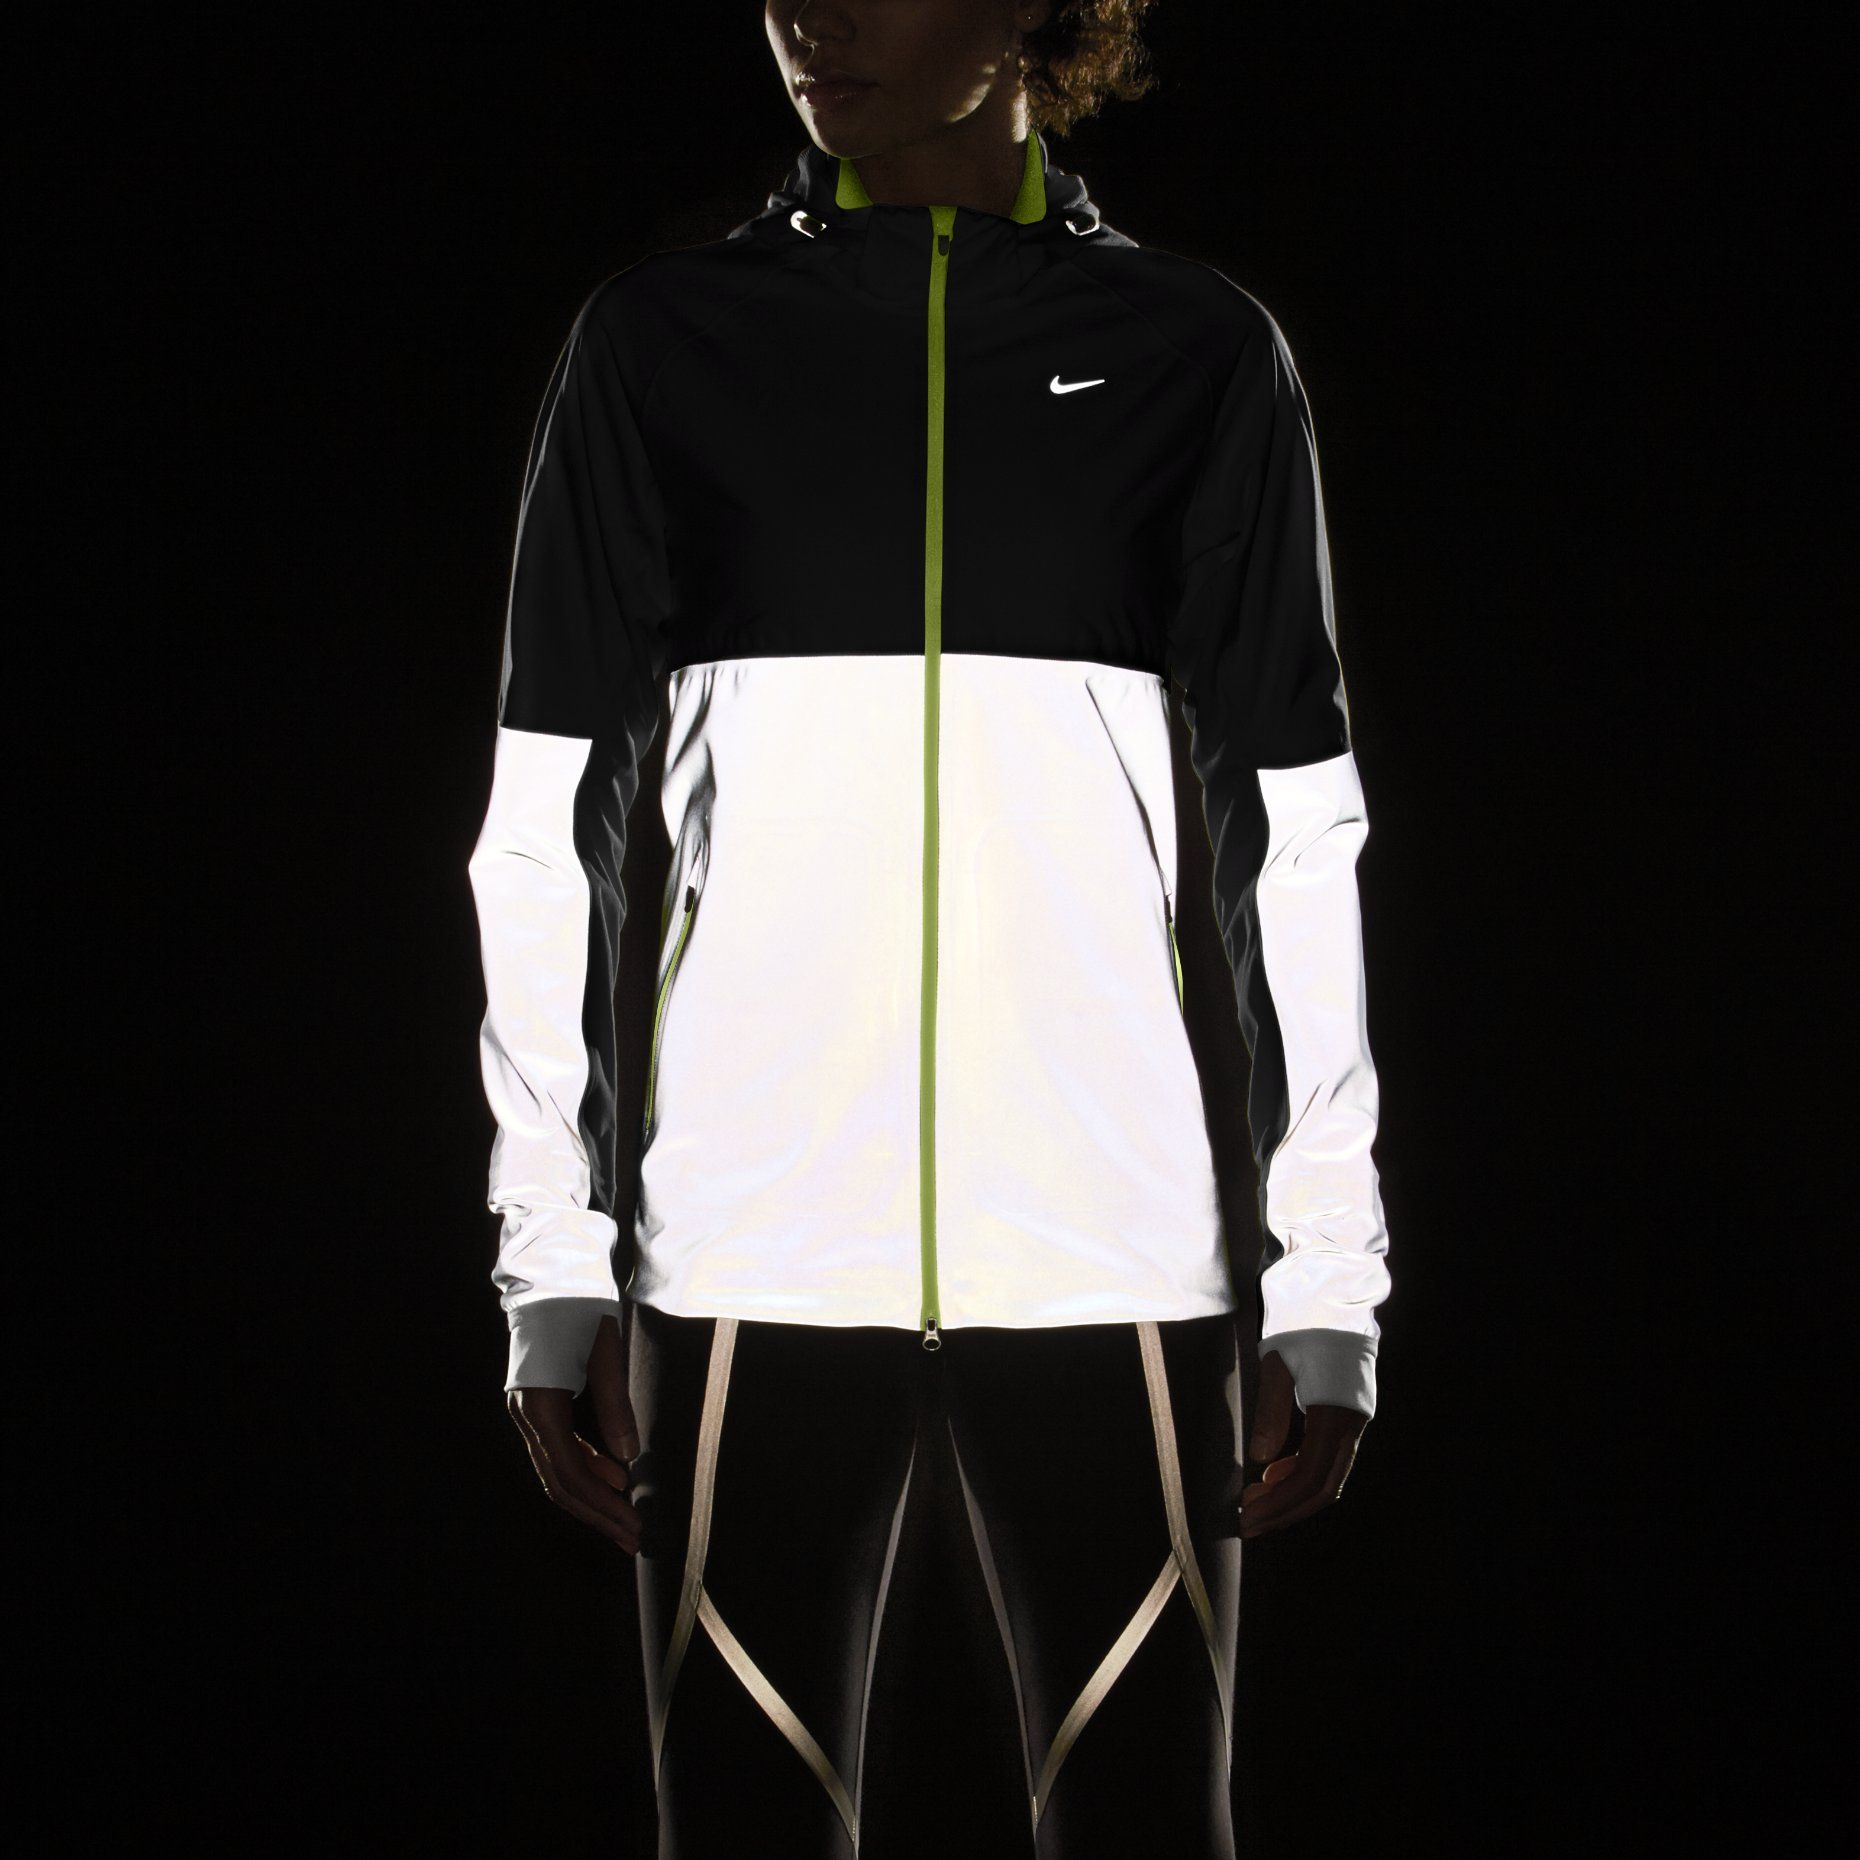 Nike jacket glow in the dark - Nike Shield Flash Women S Running Jacket Love The Reflection For Running In The Dark